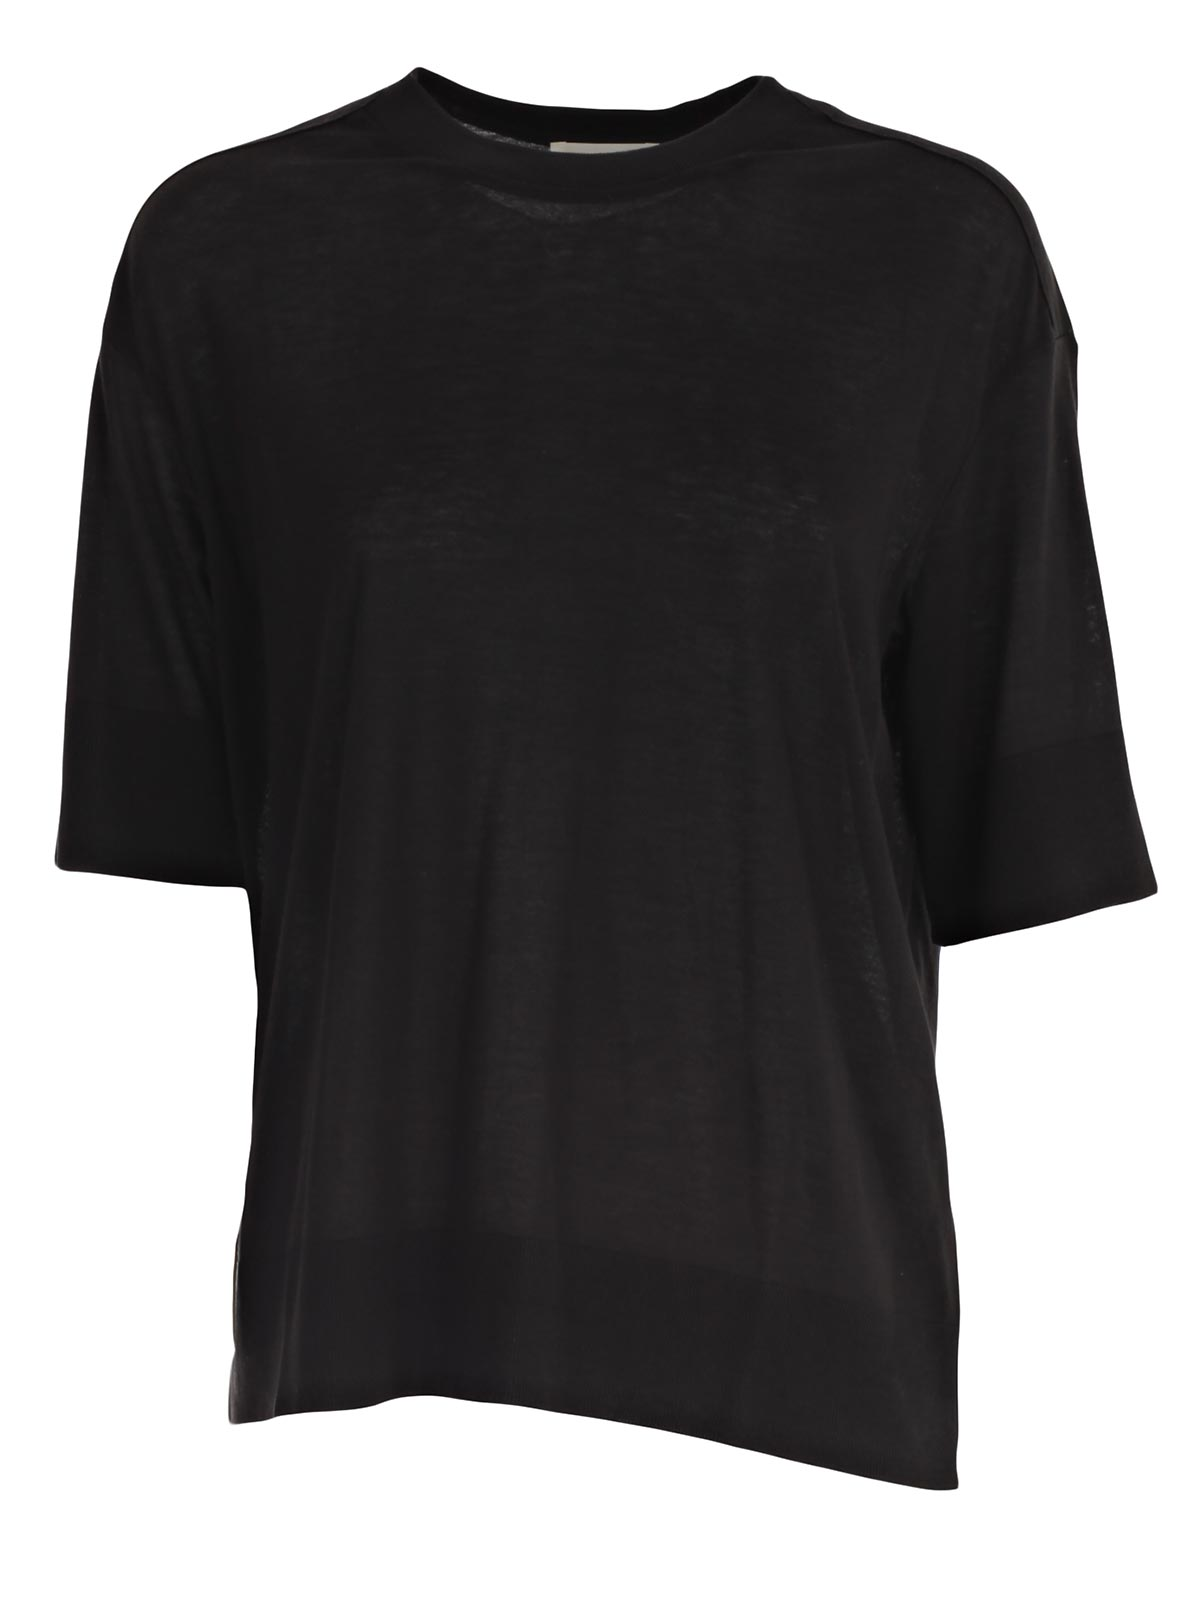 Picture of DKNY T-SHIRT ELBOW SLV CREW NECK KNIT TOP M 3/4